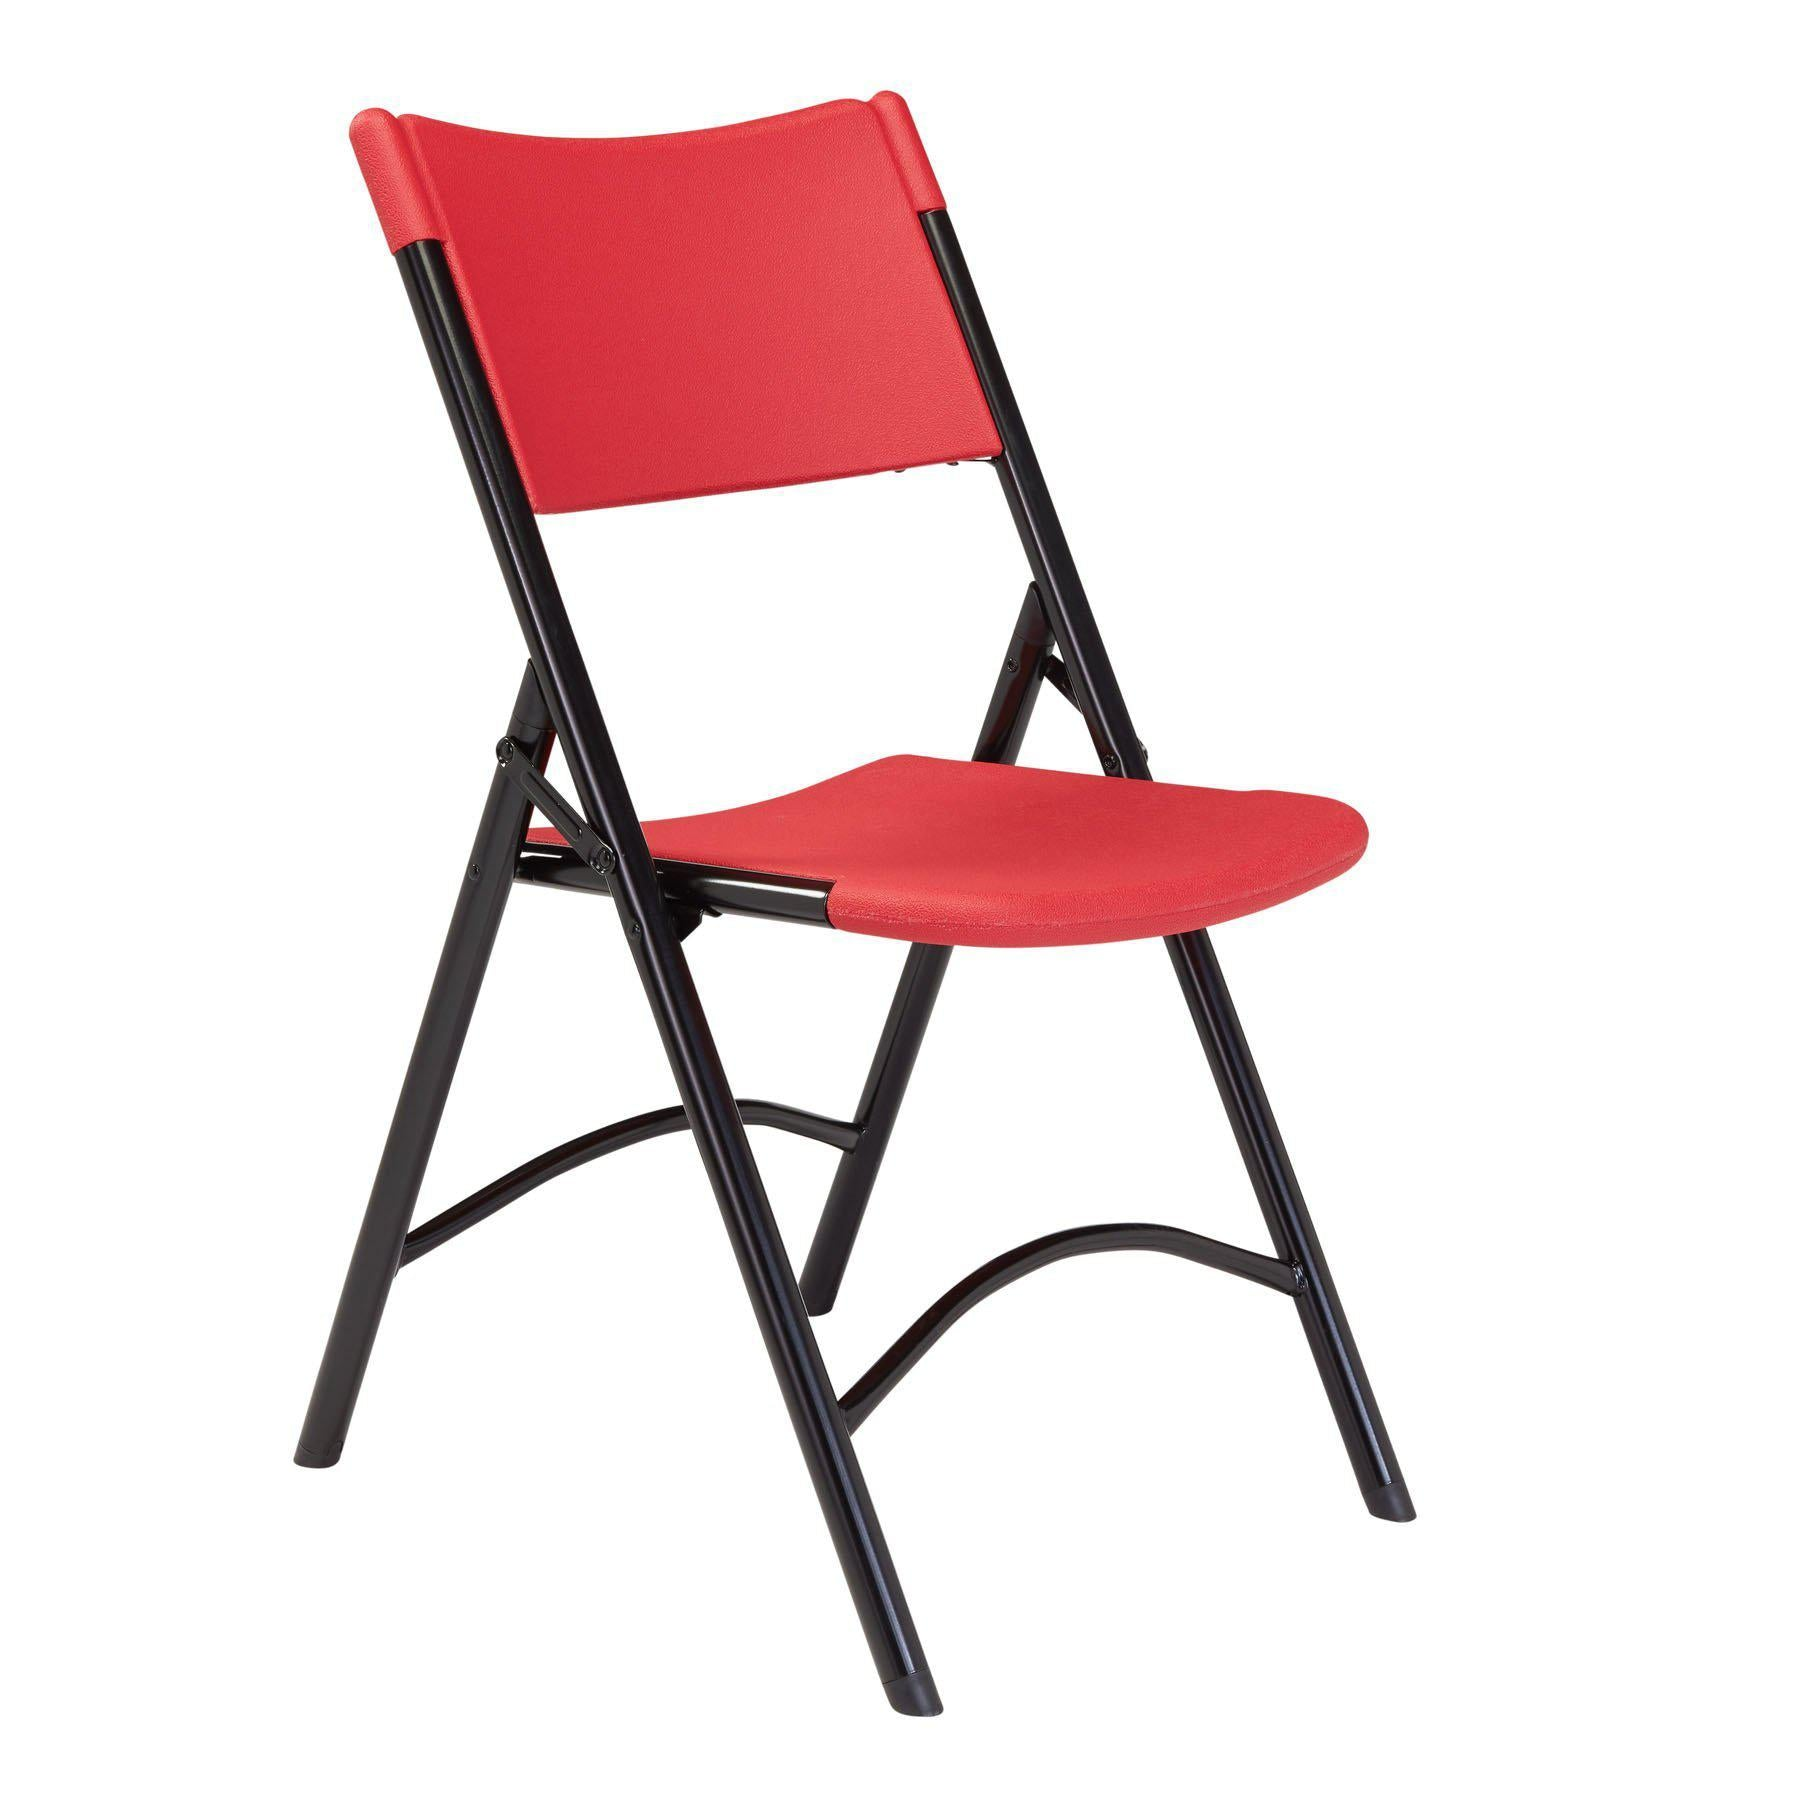 Heavy Duty Plastic Folding Chair (Carton of 4)